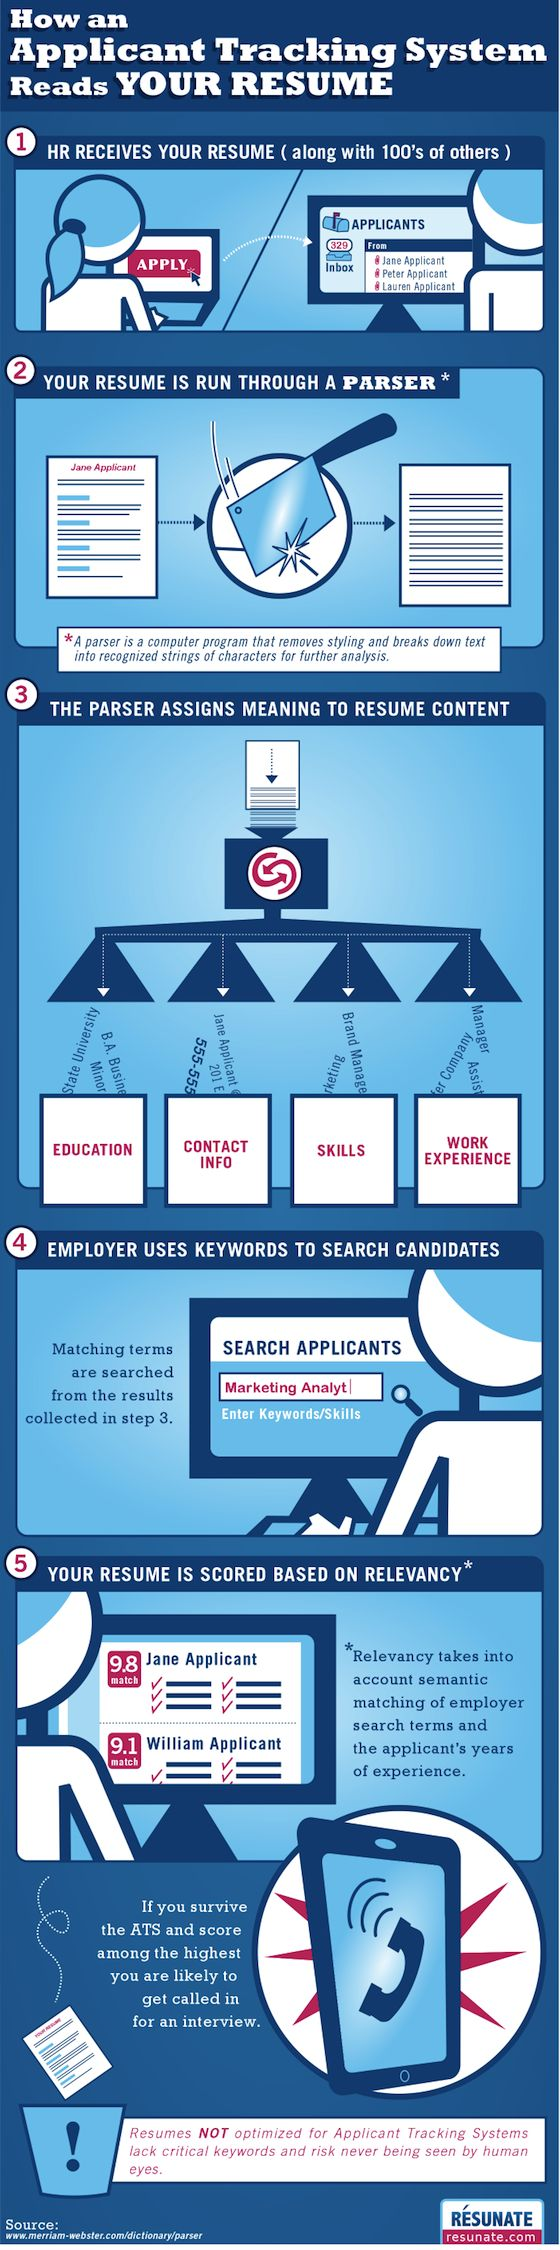 best images about resumes cover letters infographic applicant tracking system ats what happens to your resume when you